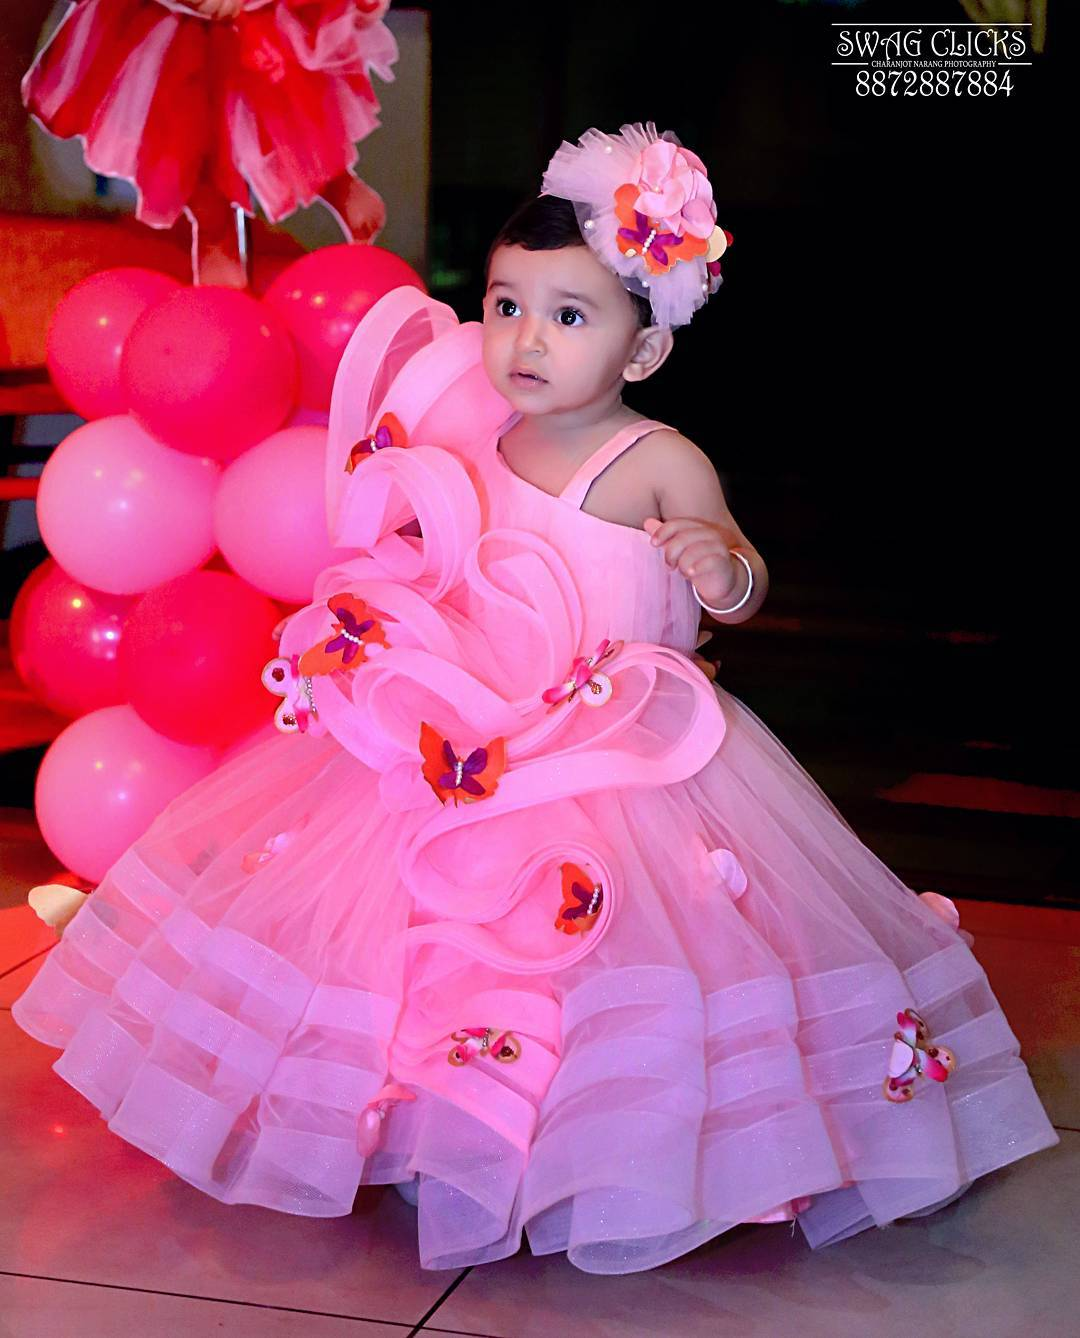 Baby Fancy Pink Gown For Little Girls Baby Girl Princess Dress Ideas for Memorable Photoshoot